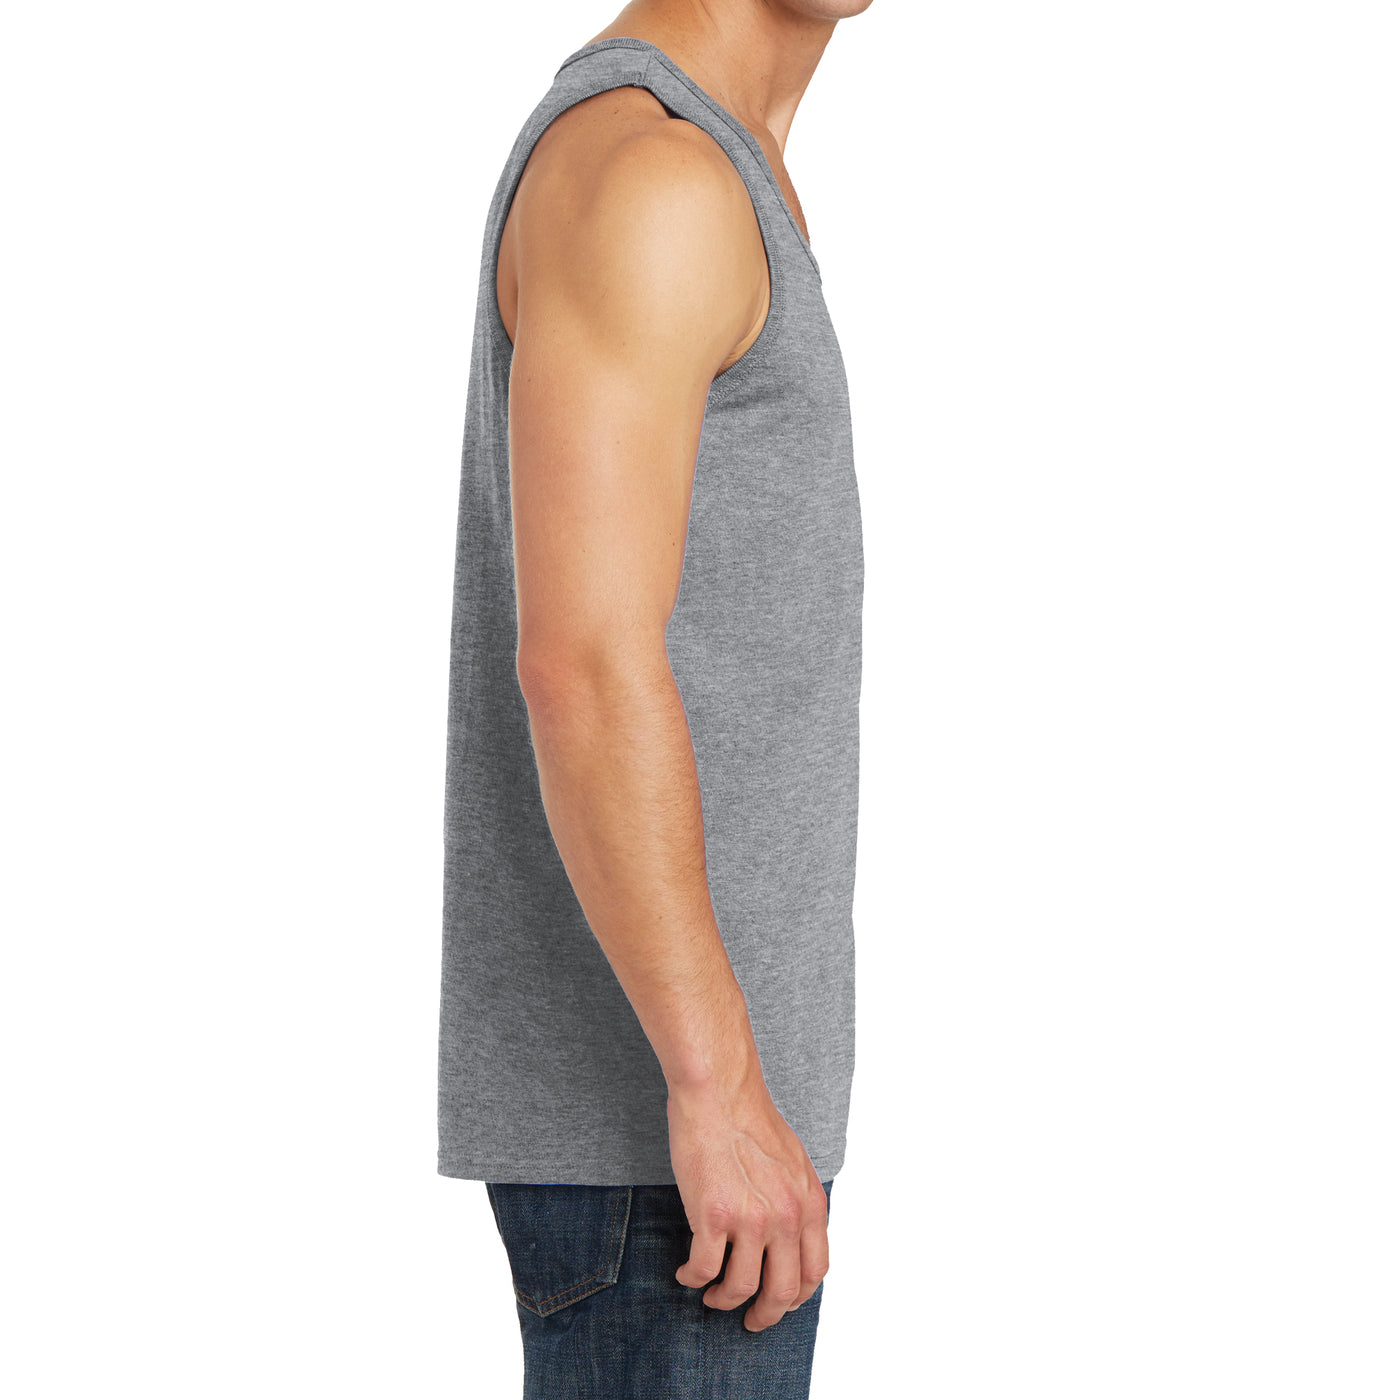 Men's Core Cotton Tank Top - Athletic Heather - Side